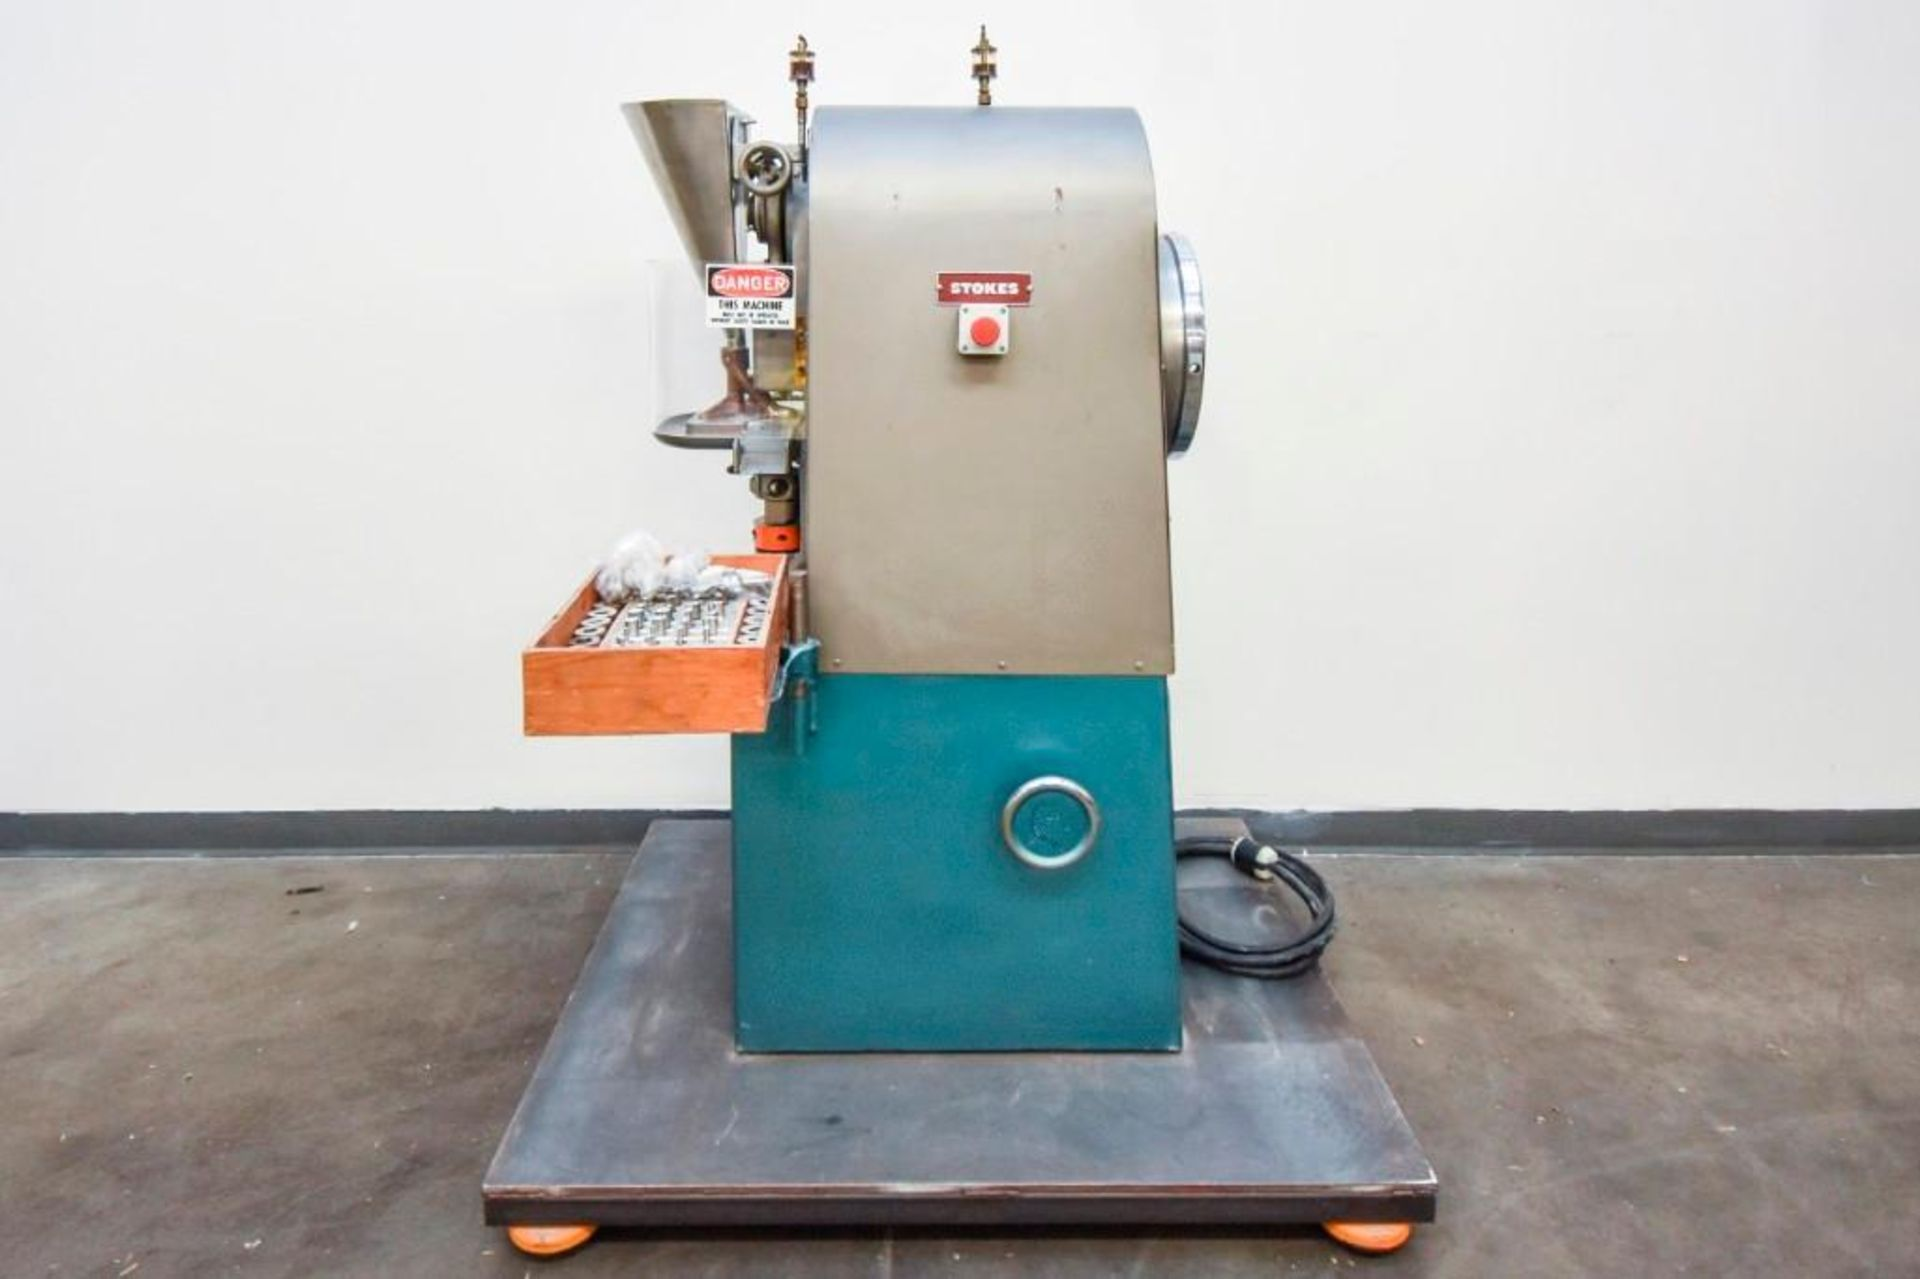 Stokes Single Punch Tablet Press with Tooling - Image 4 of 20